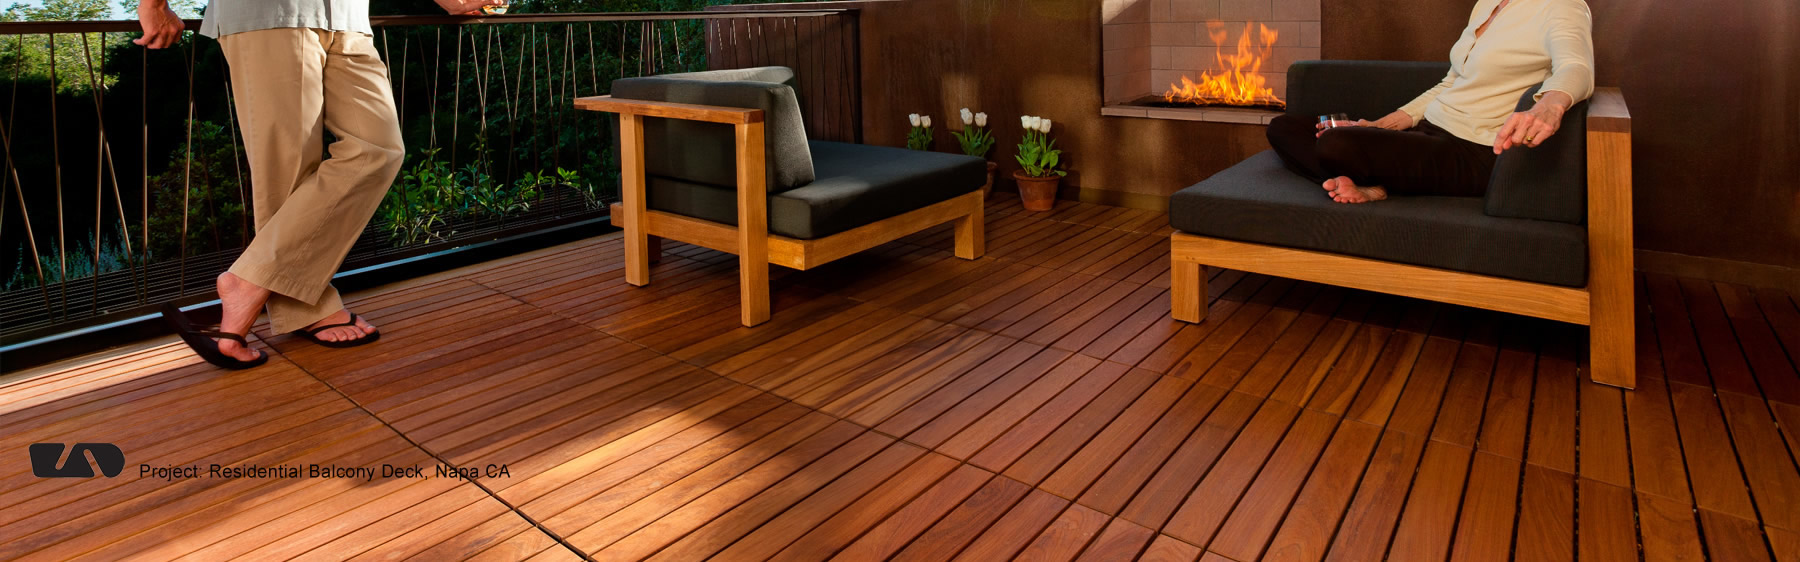 Outdoor Timber Tiles Deck Tiles Porcelain Pavers And General Modular Outdoor Flooring Faq